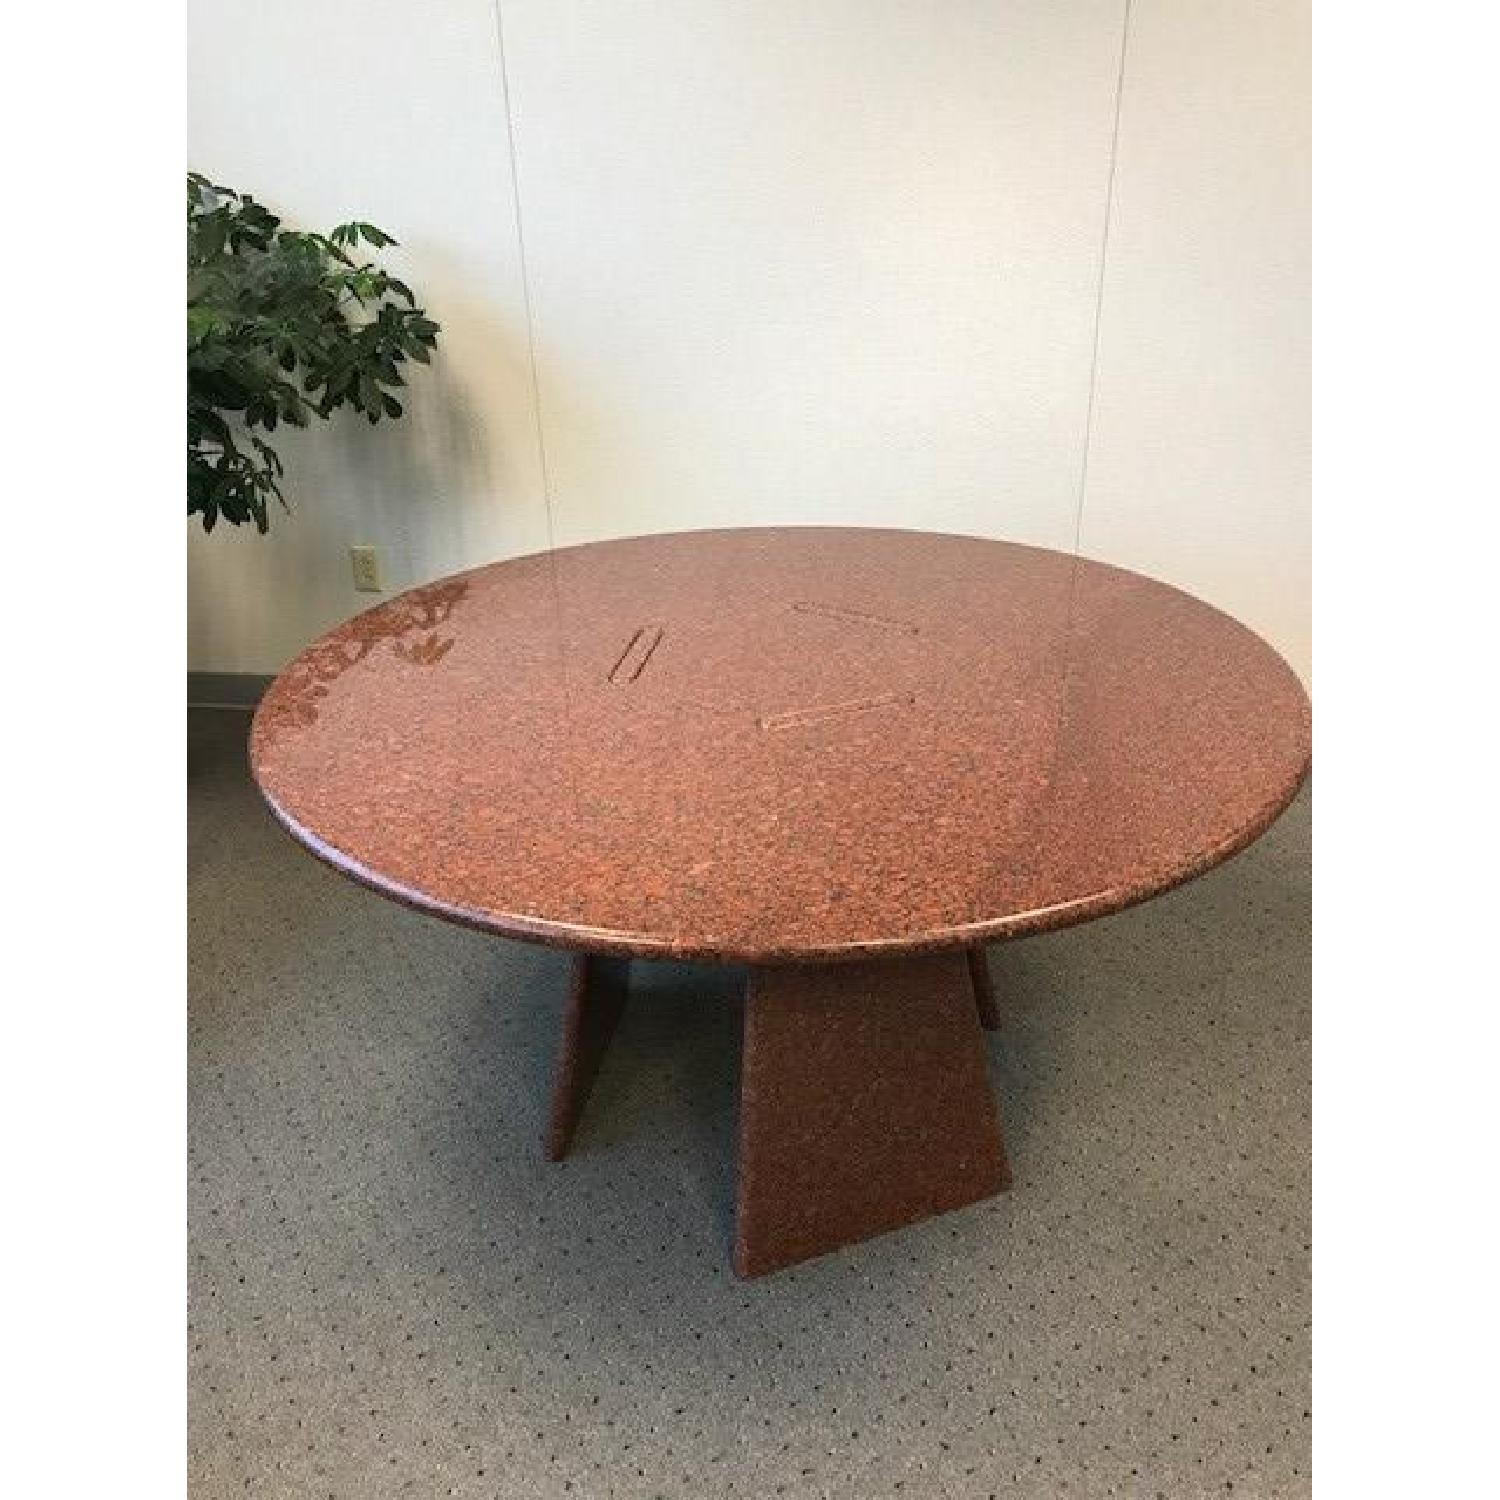 Angelo Mangiarotti Big Asolo Dining Table in a Red Granite